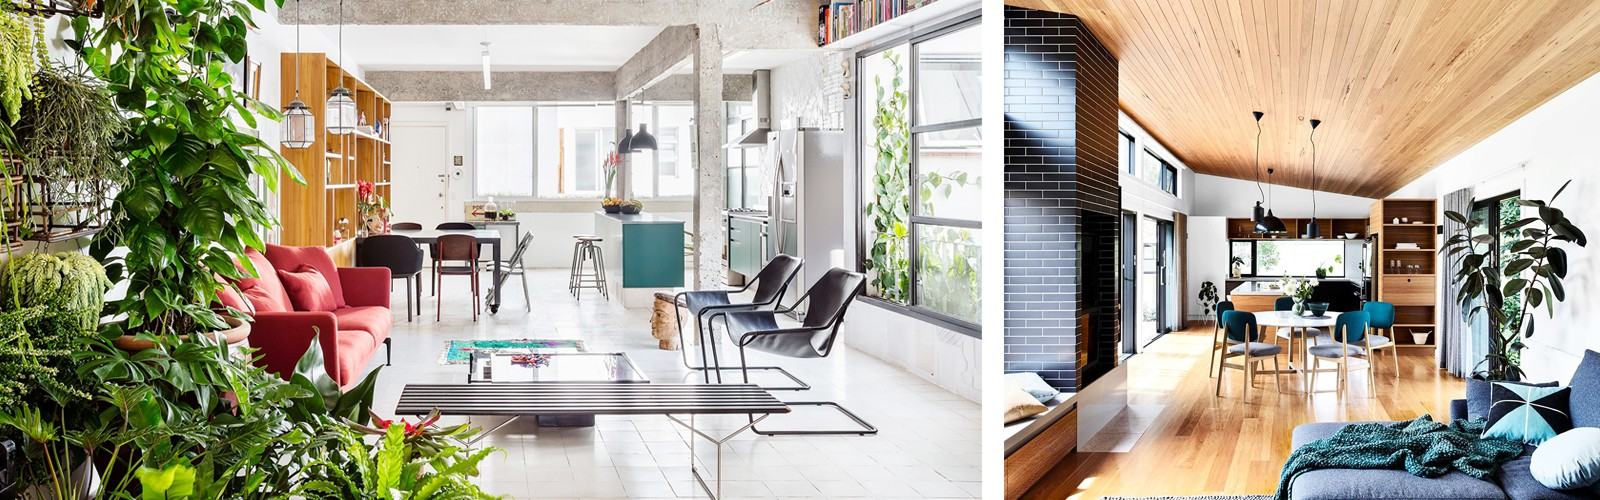 11 Open-Plan Living Spaces That Will Make You Want to Move   MyDomaine